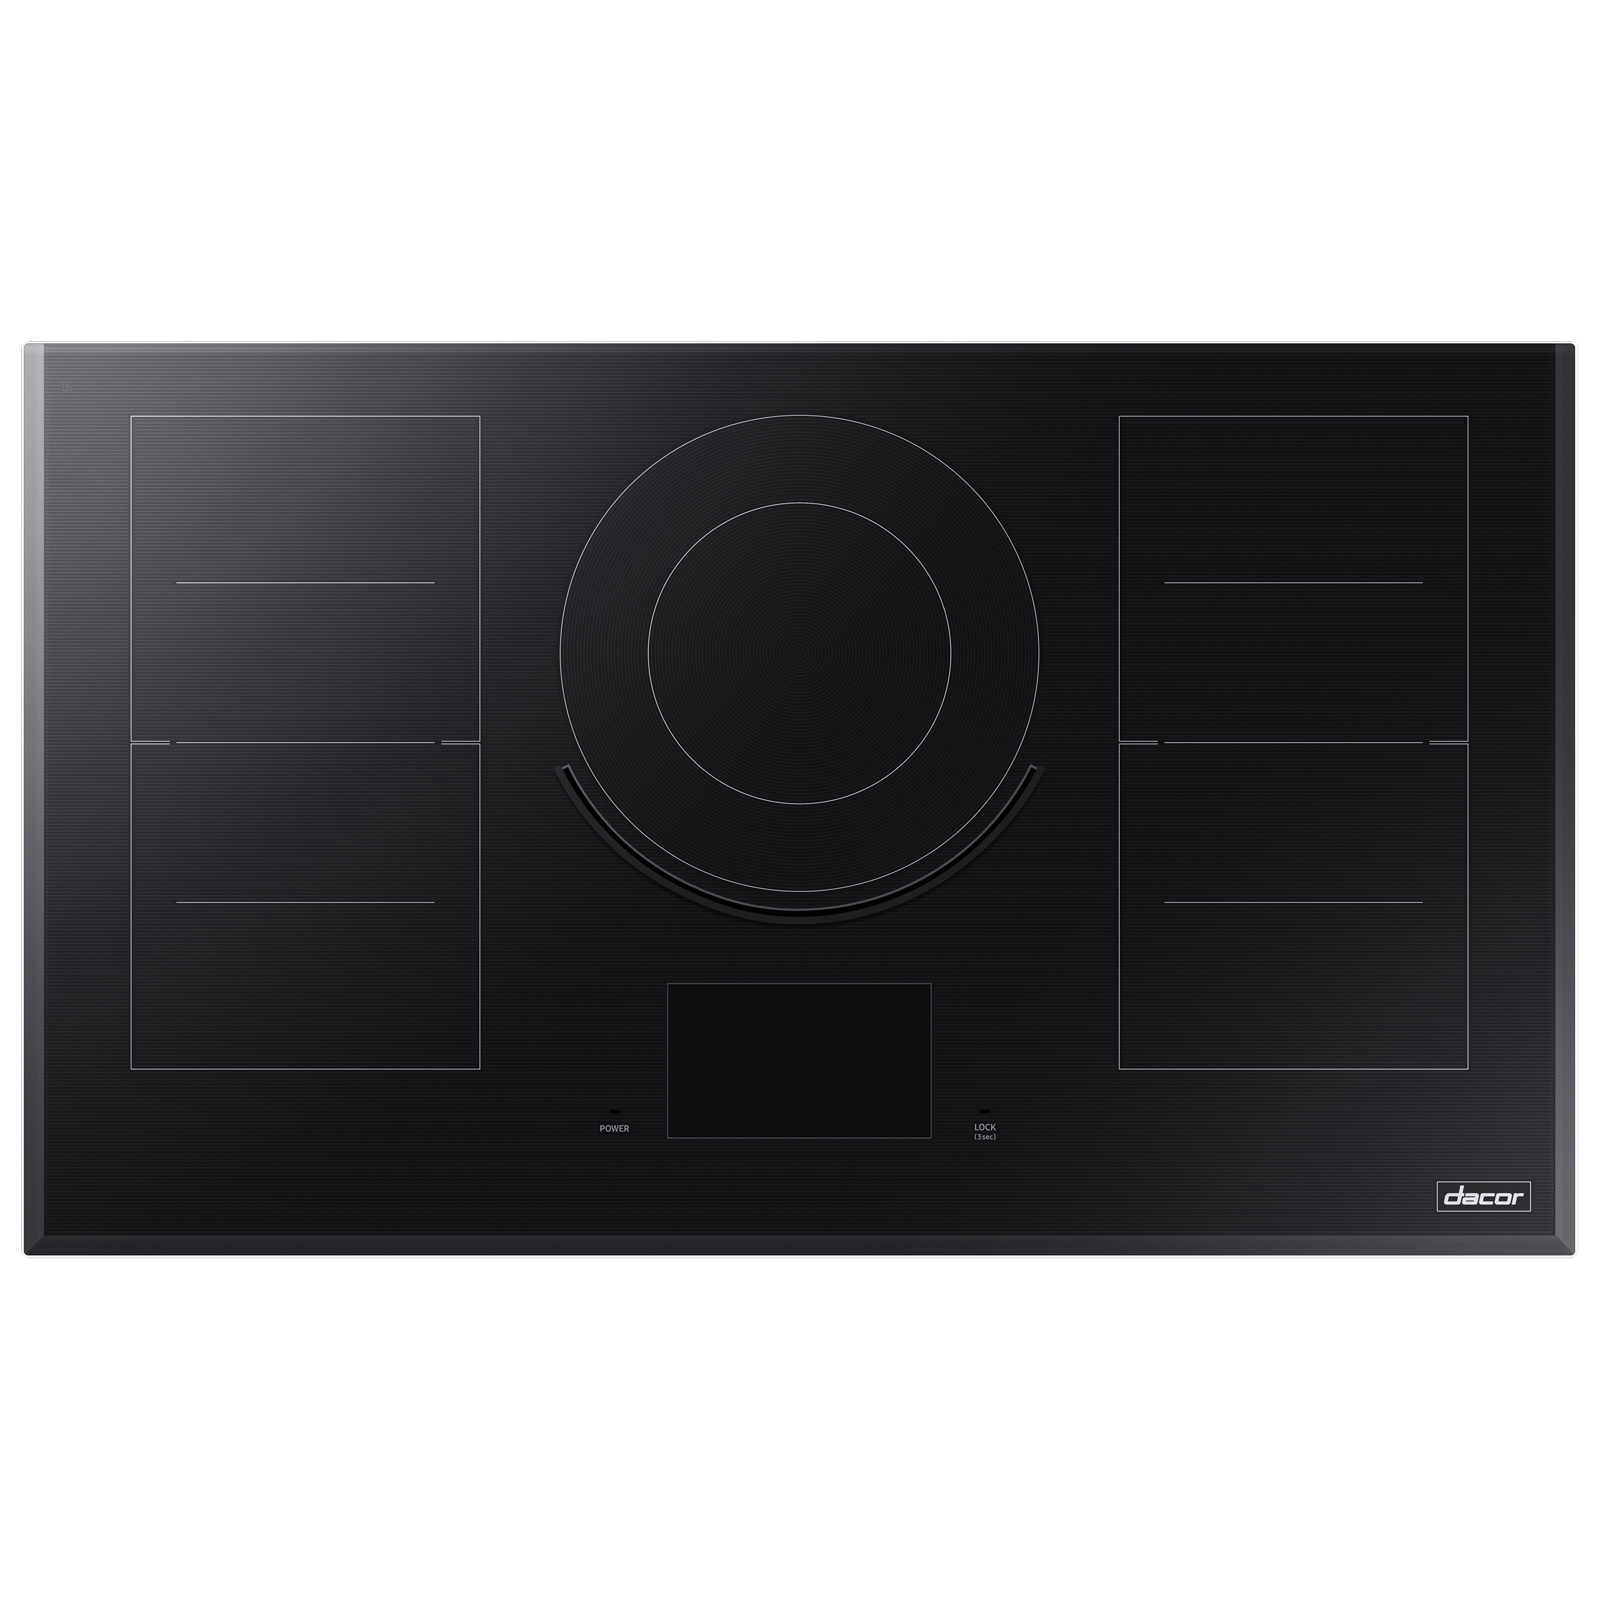 "Dacor Modernist 36"" Induction Cooktop, Black Glass"